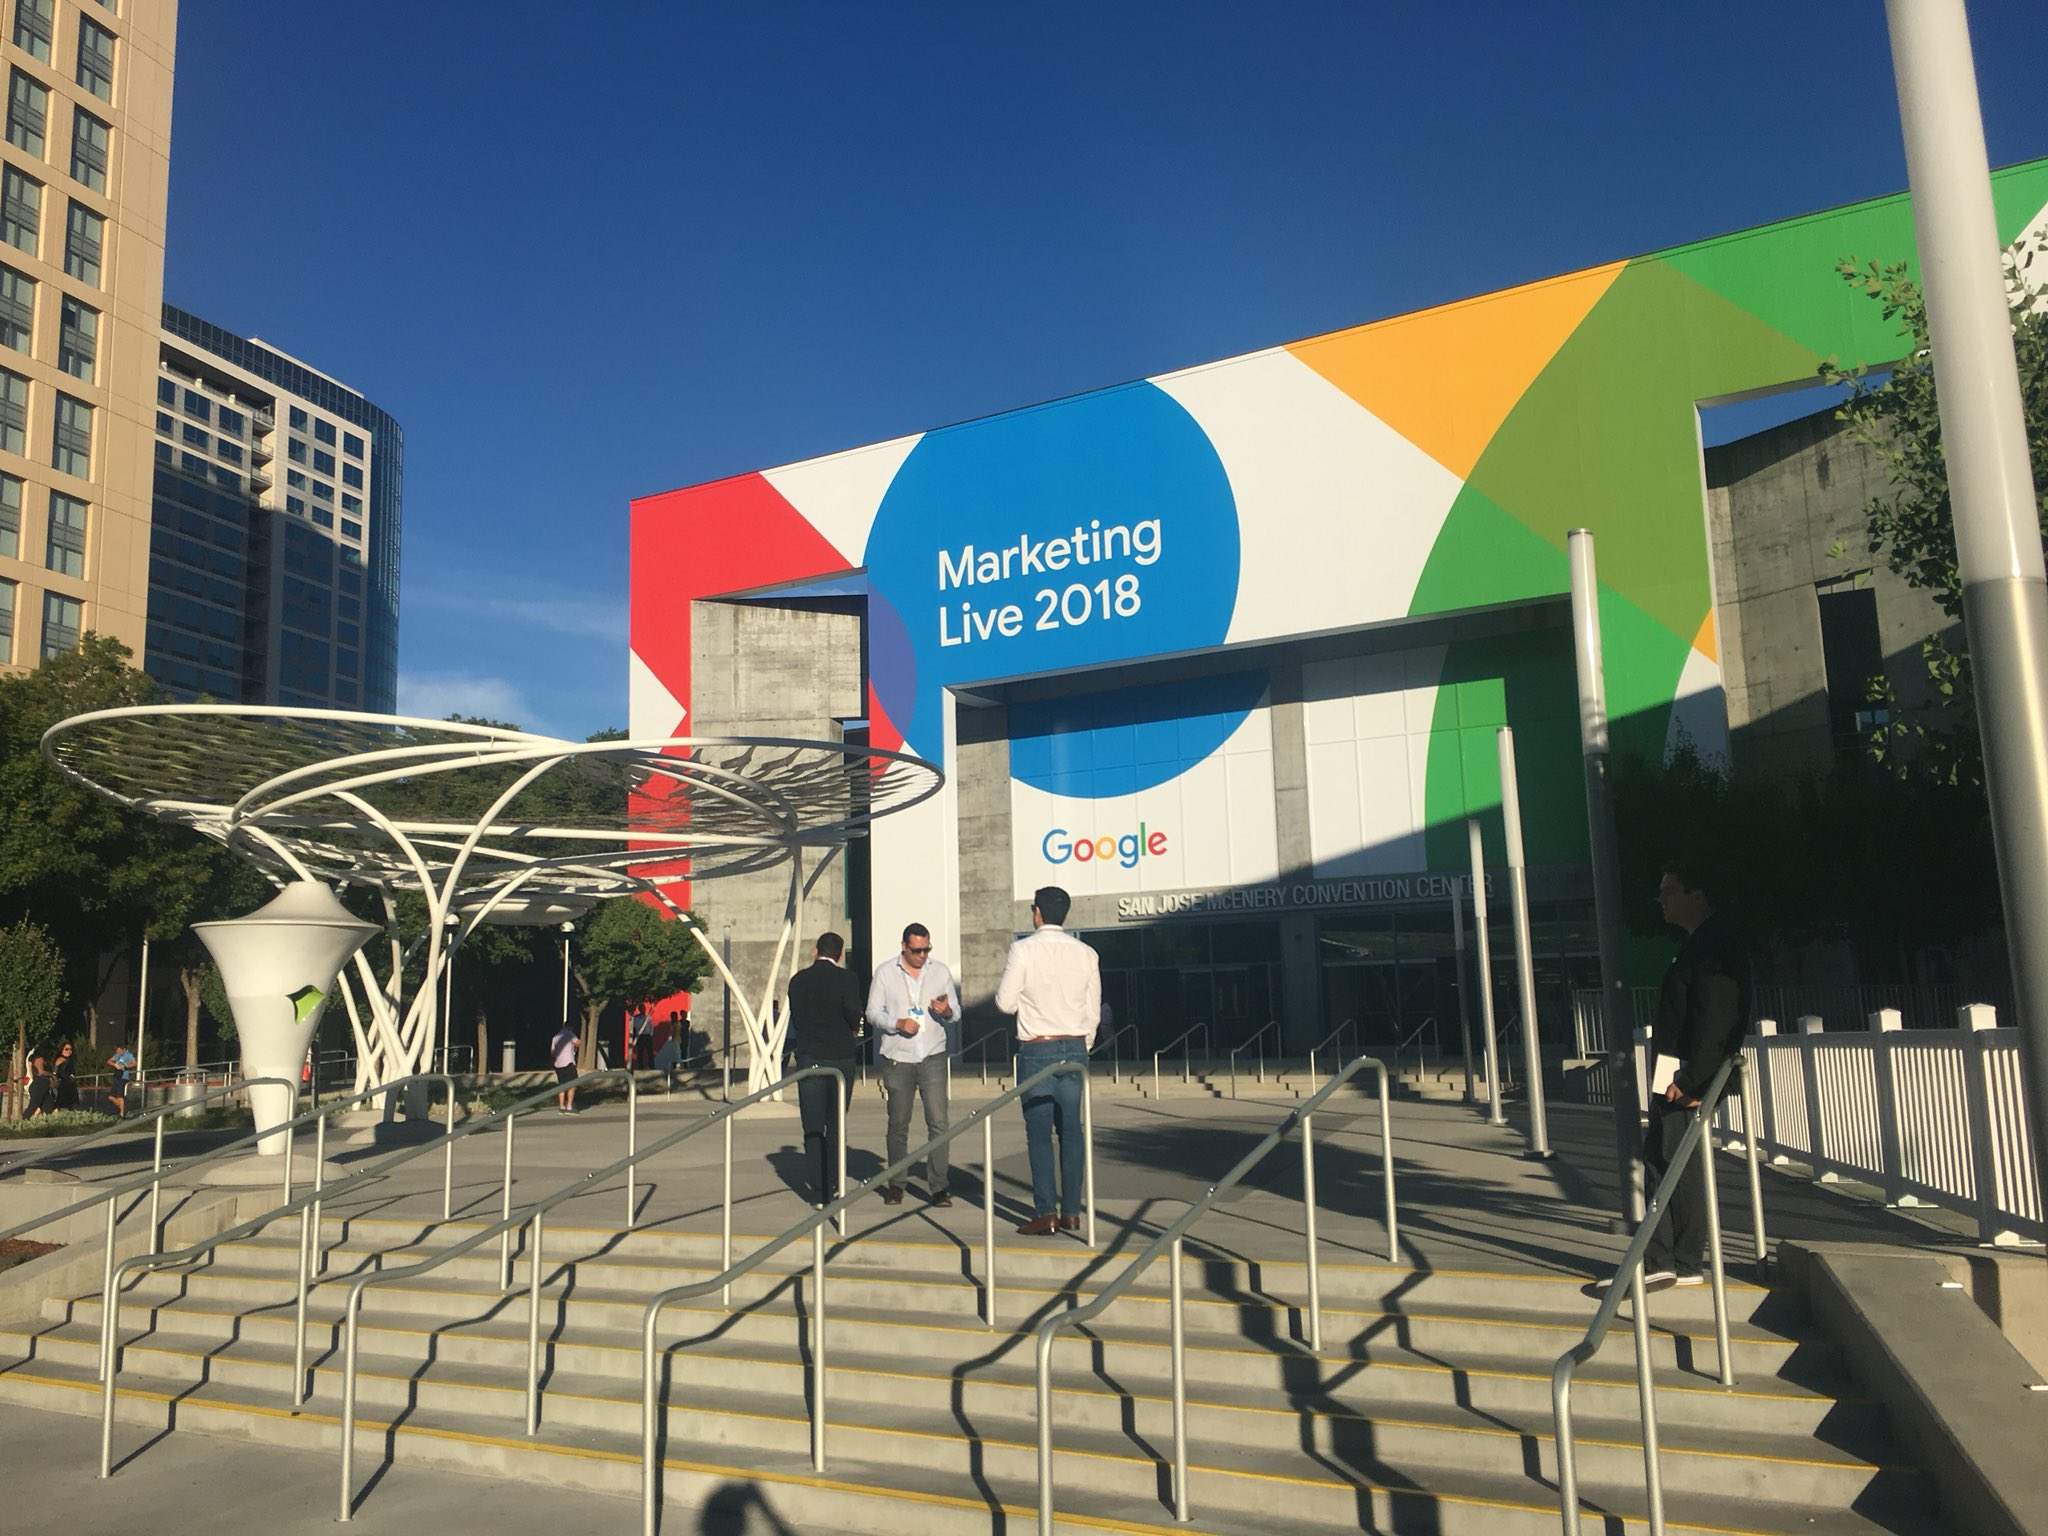 Google Marketing Live in San Jose, CA